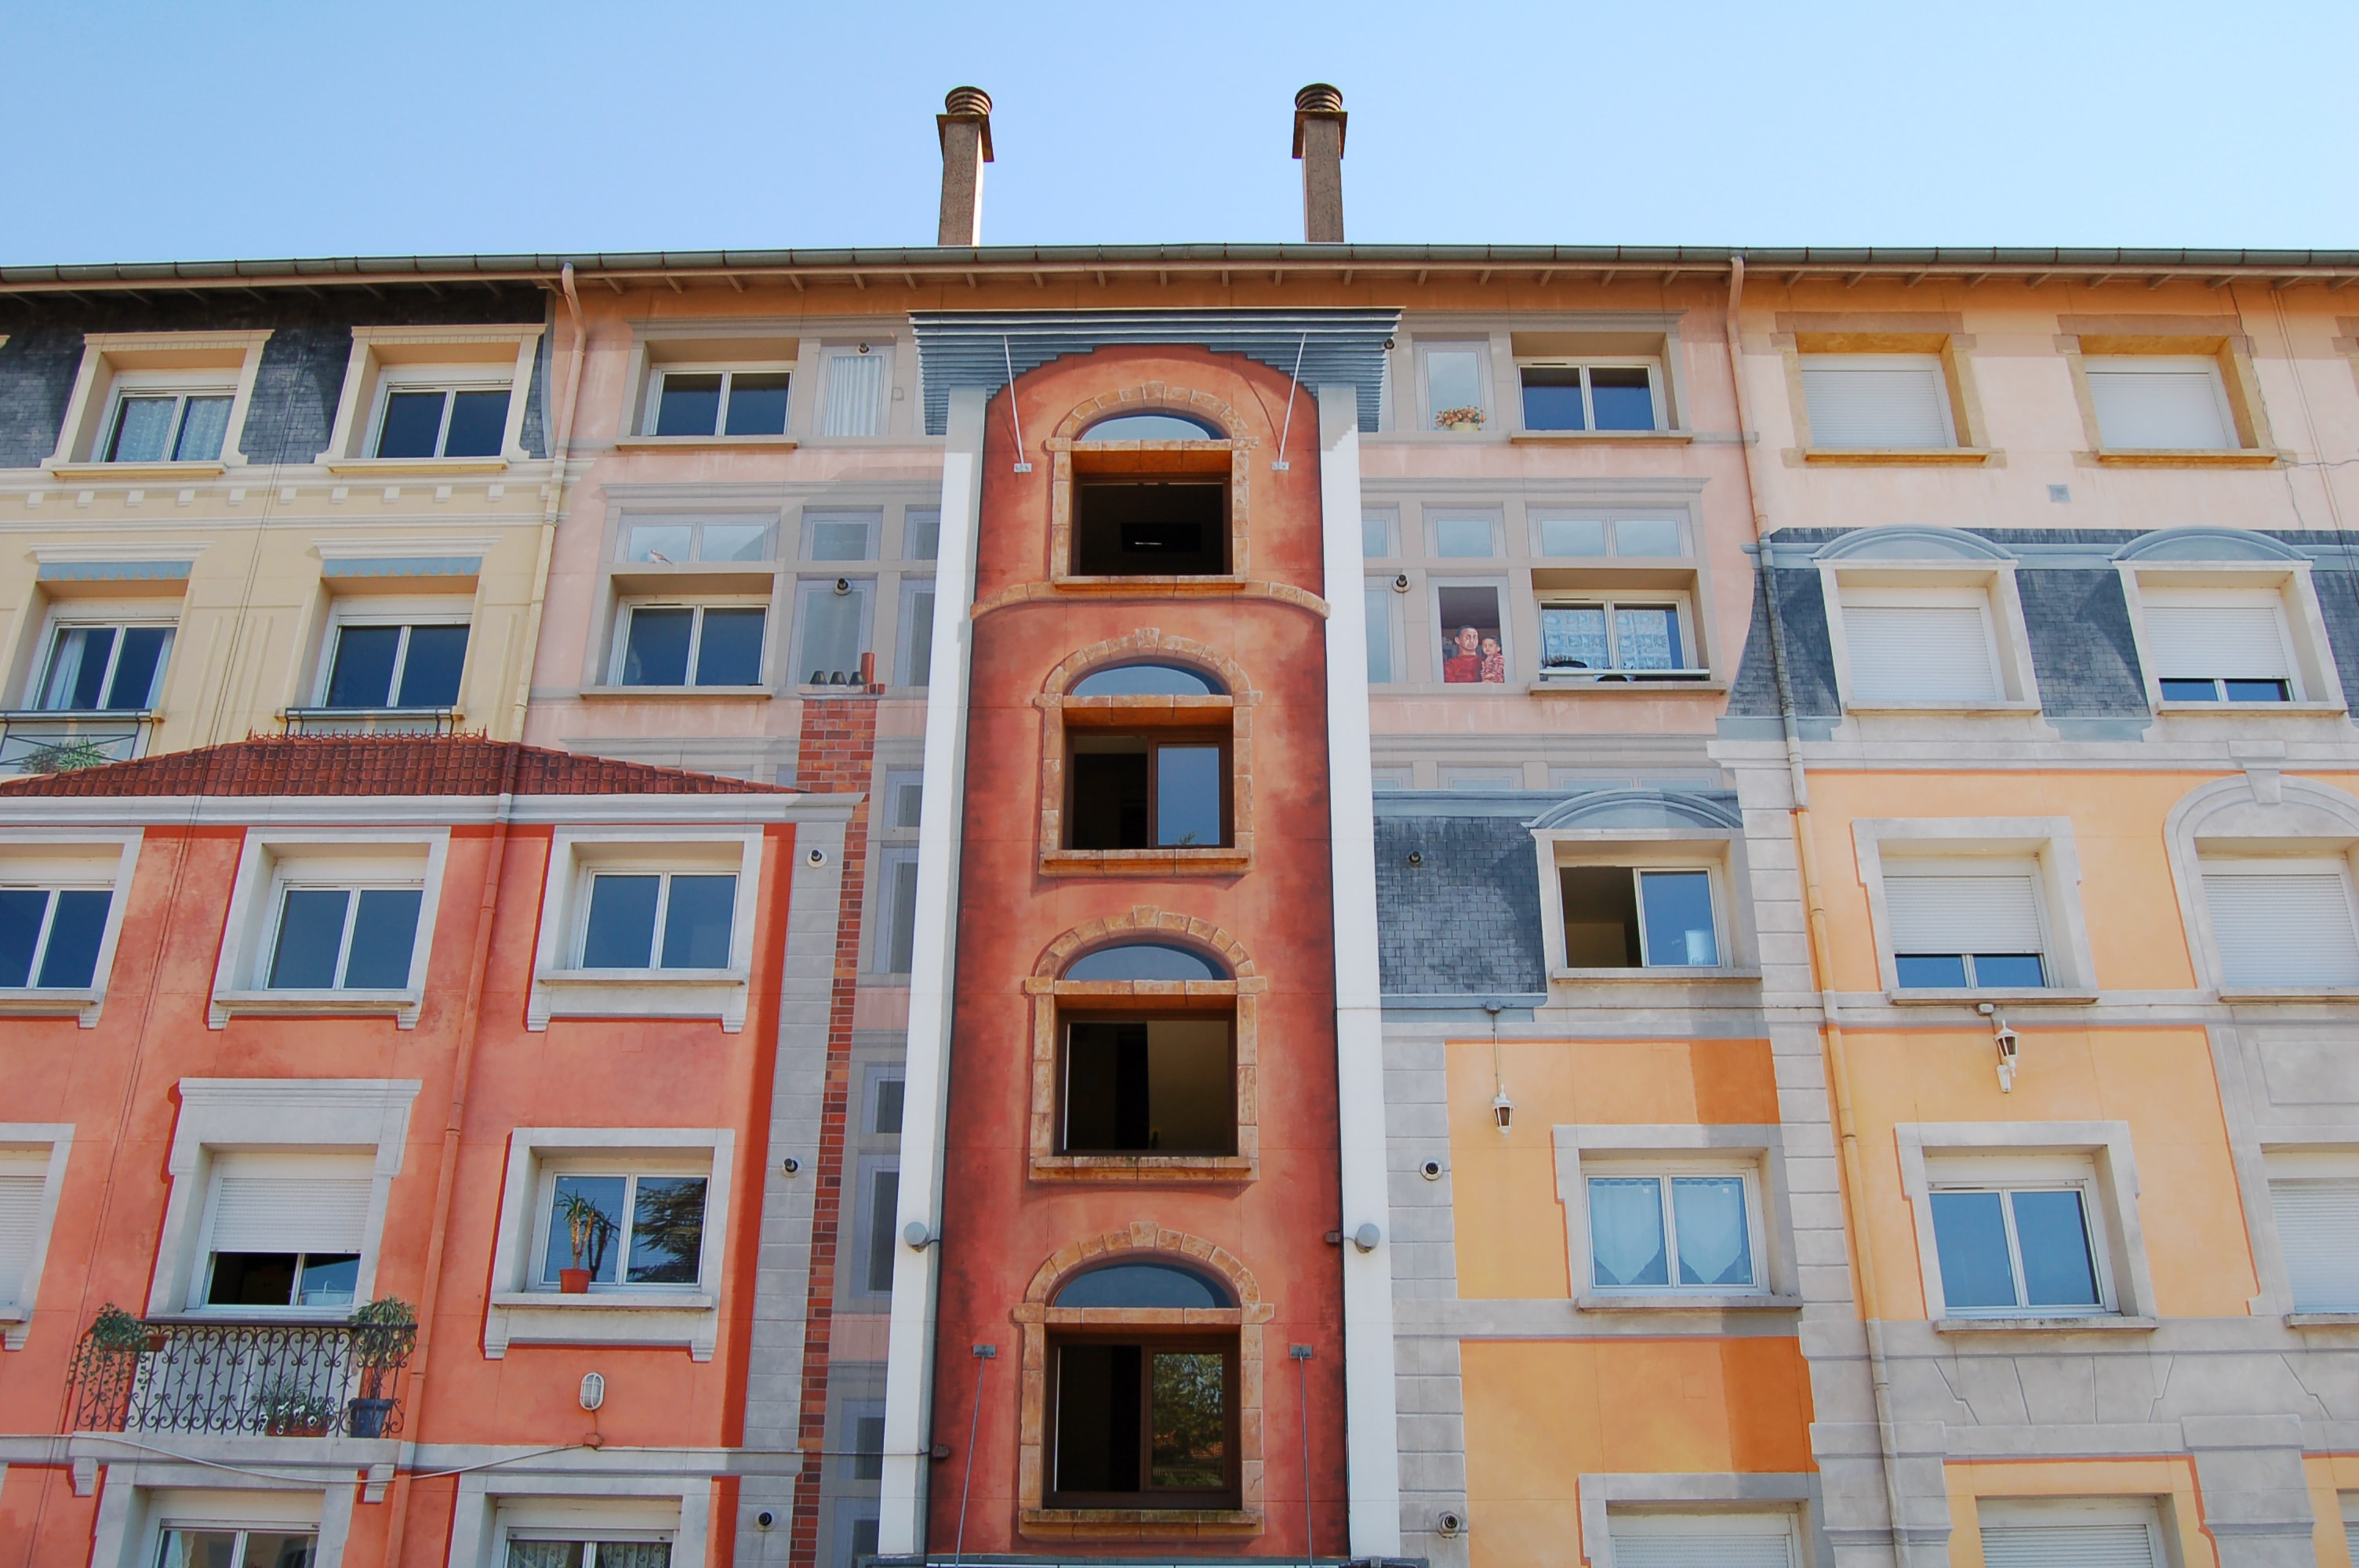 low-angle photography of brown and beige building